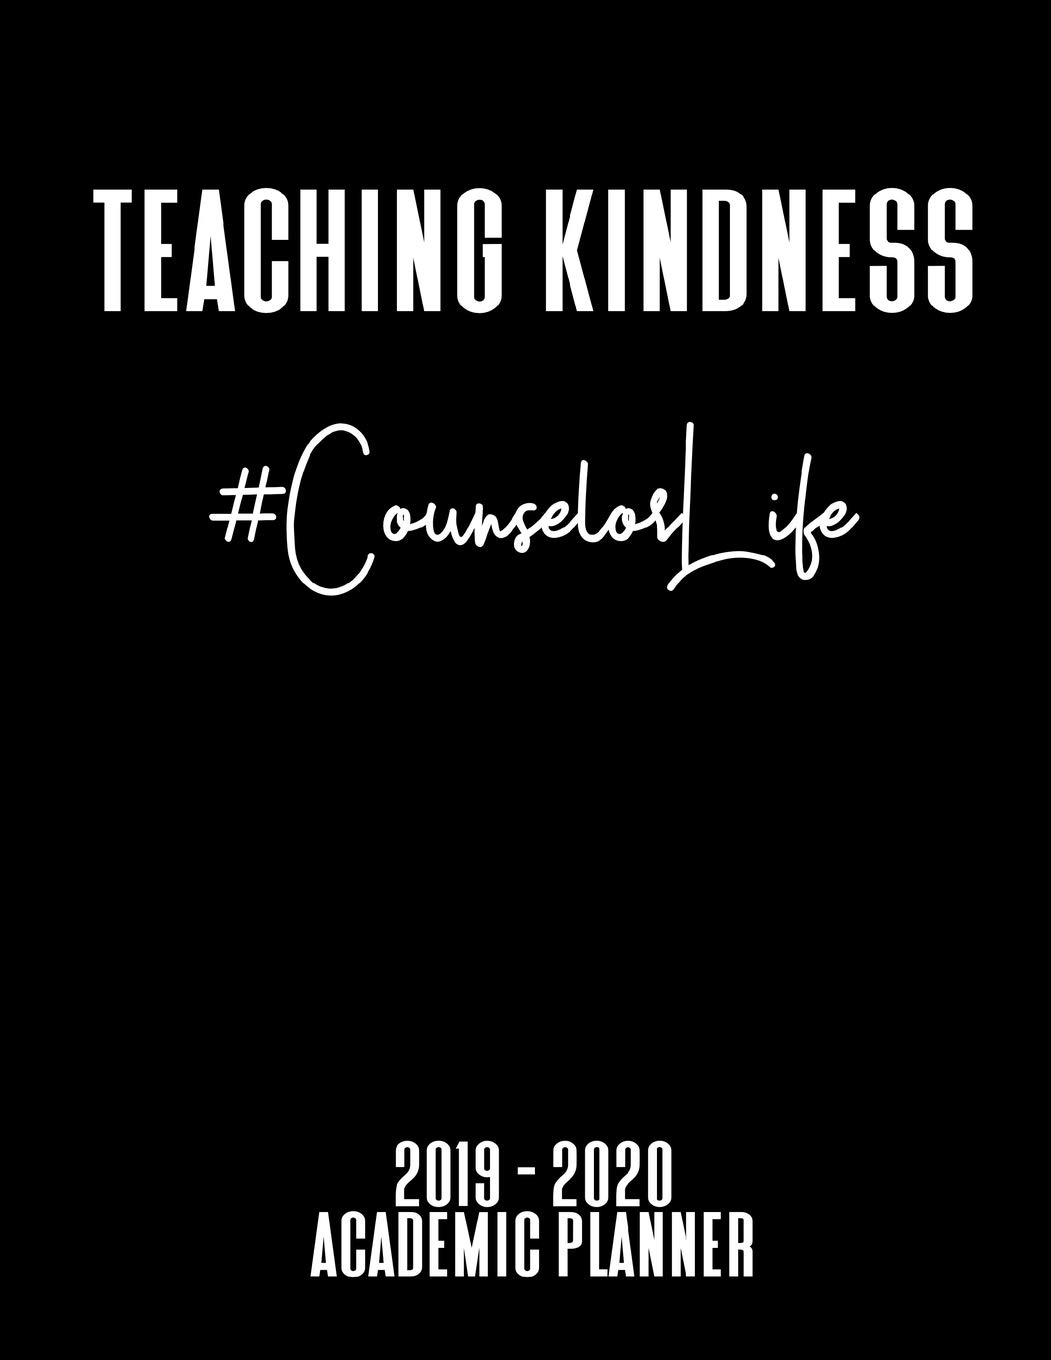 December Kindness Calendar 2020 Amazon.com: Teaching Kindness Academic Planner: #CounselorLife: An